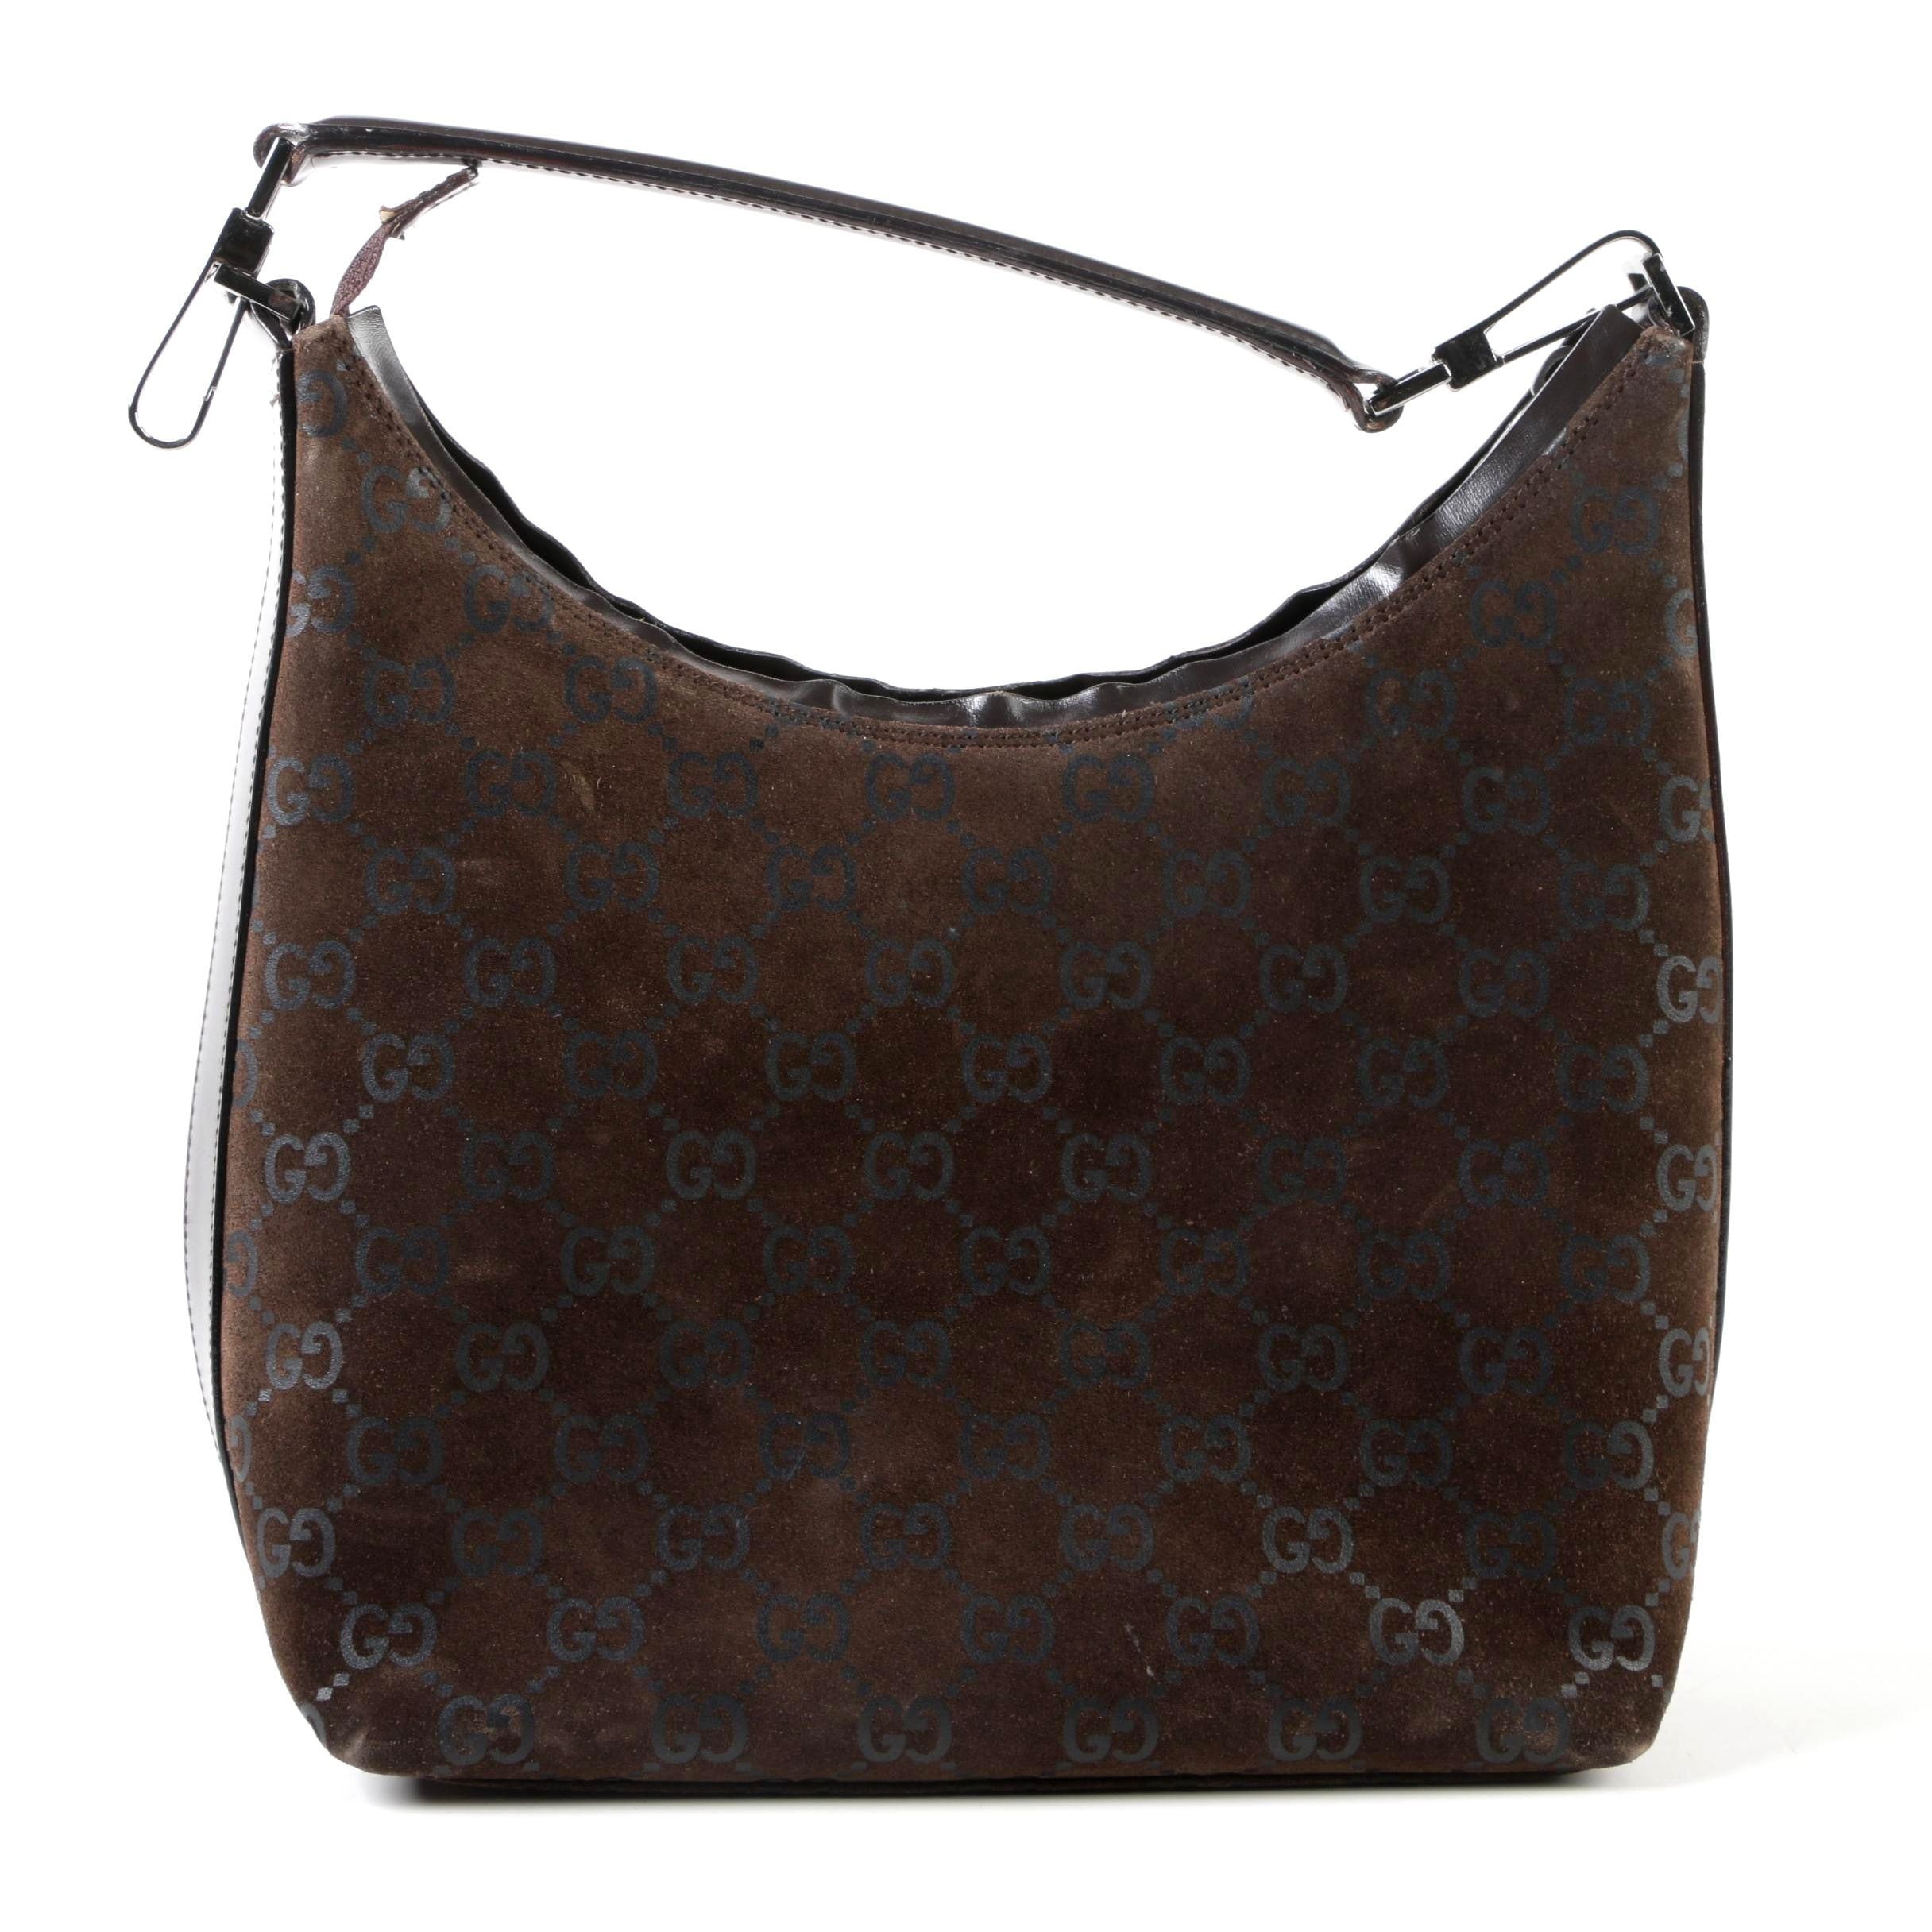 Gucci Brown GG Monogram Suede and Leather Hobo Bag